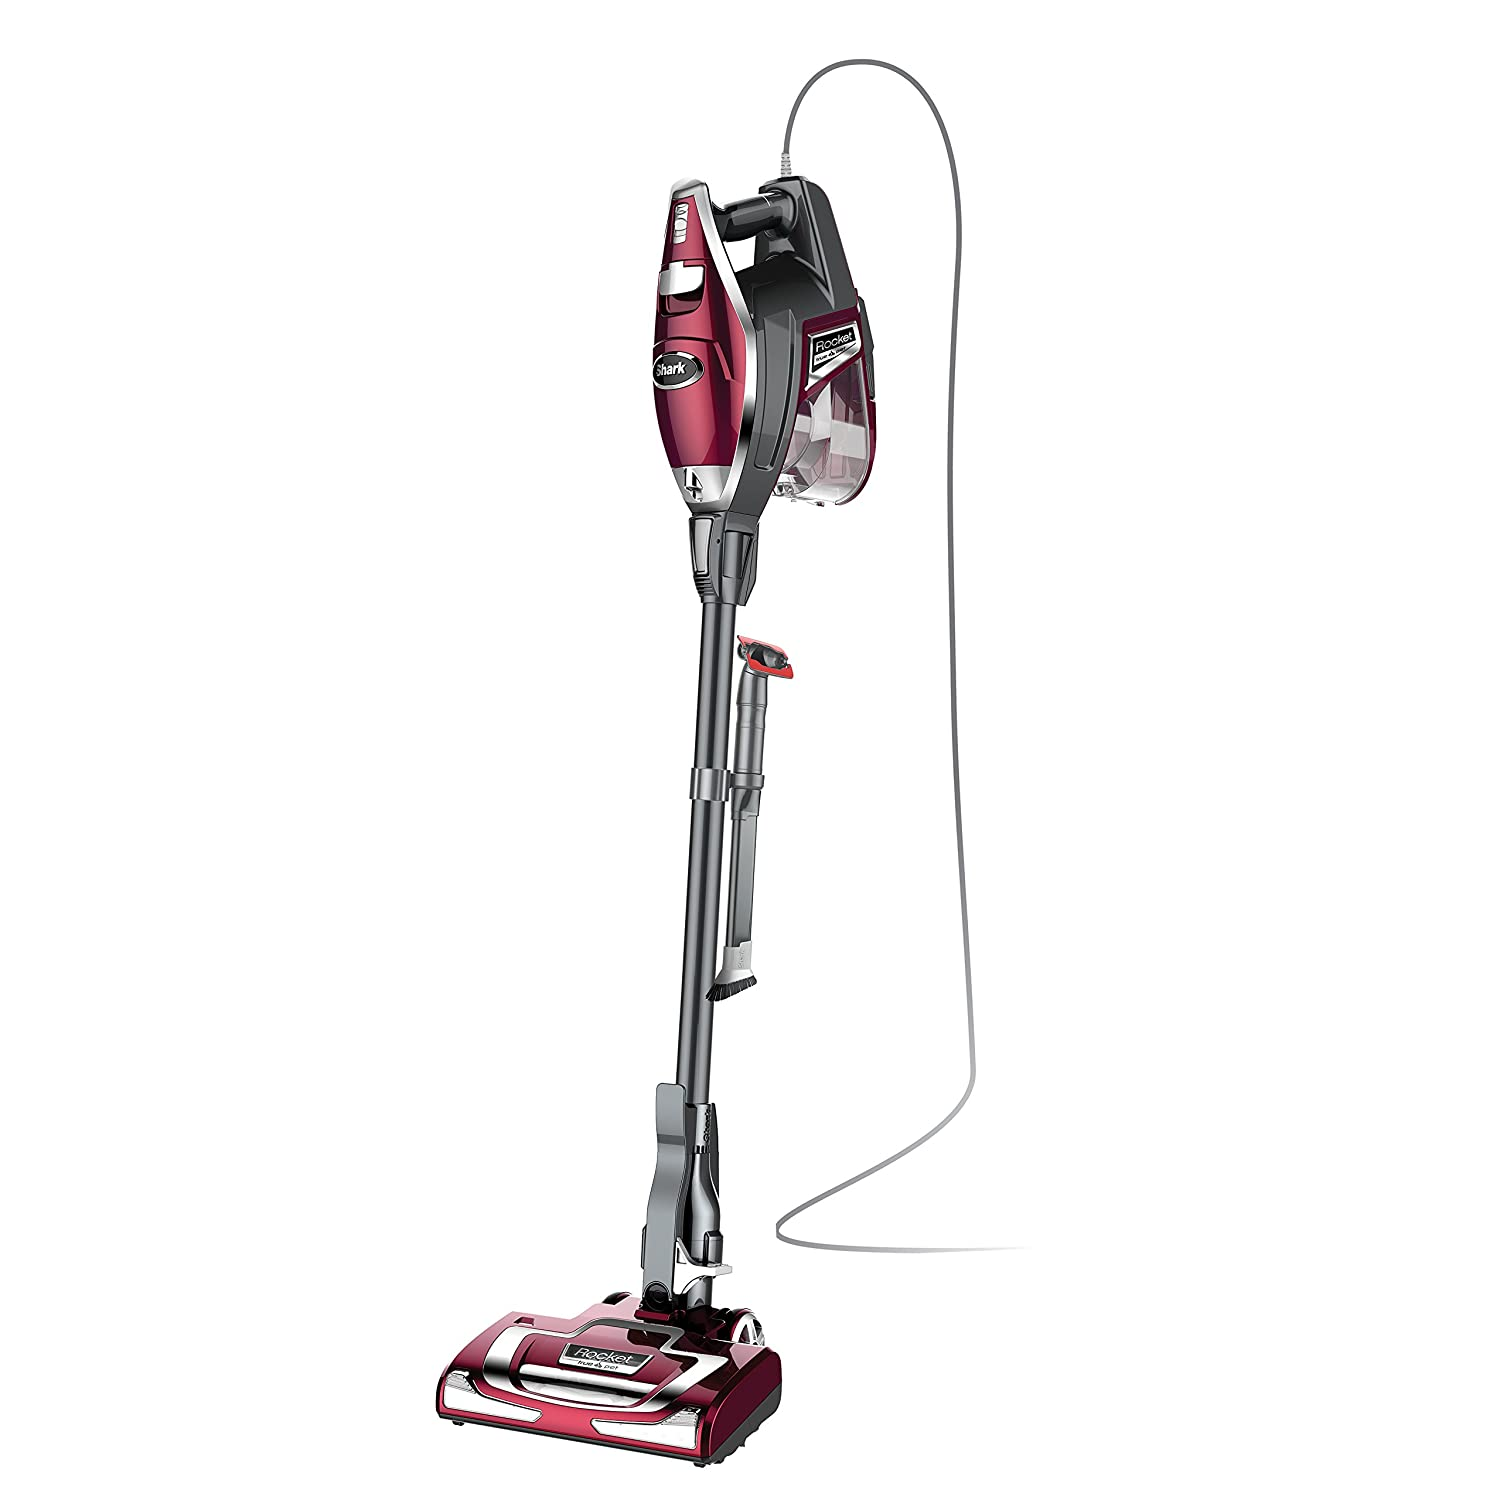 Shark Rocket TruePet Ultra-Light Corded Bagless Vacuum Converts to Hand Vacuum with Pet Tool and Hard Floor Hero Attachment (HV322), Bordeaux SharkNinja